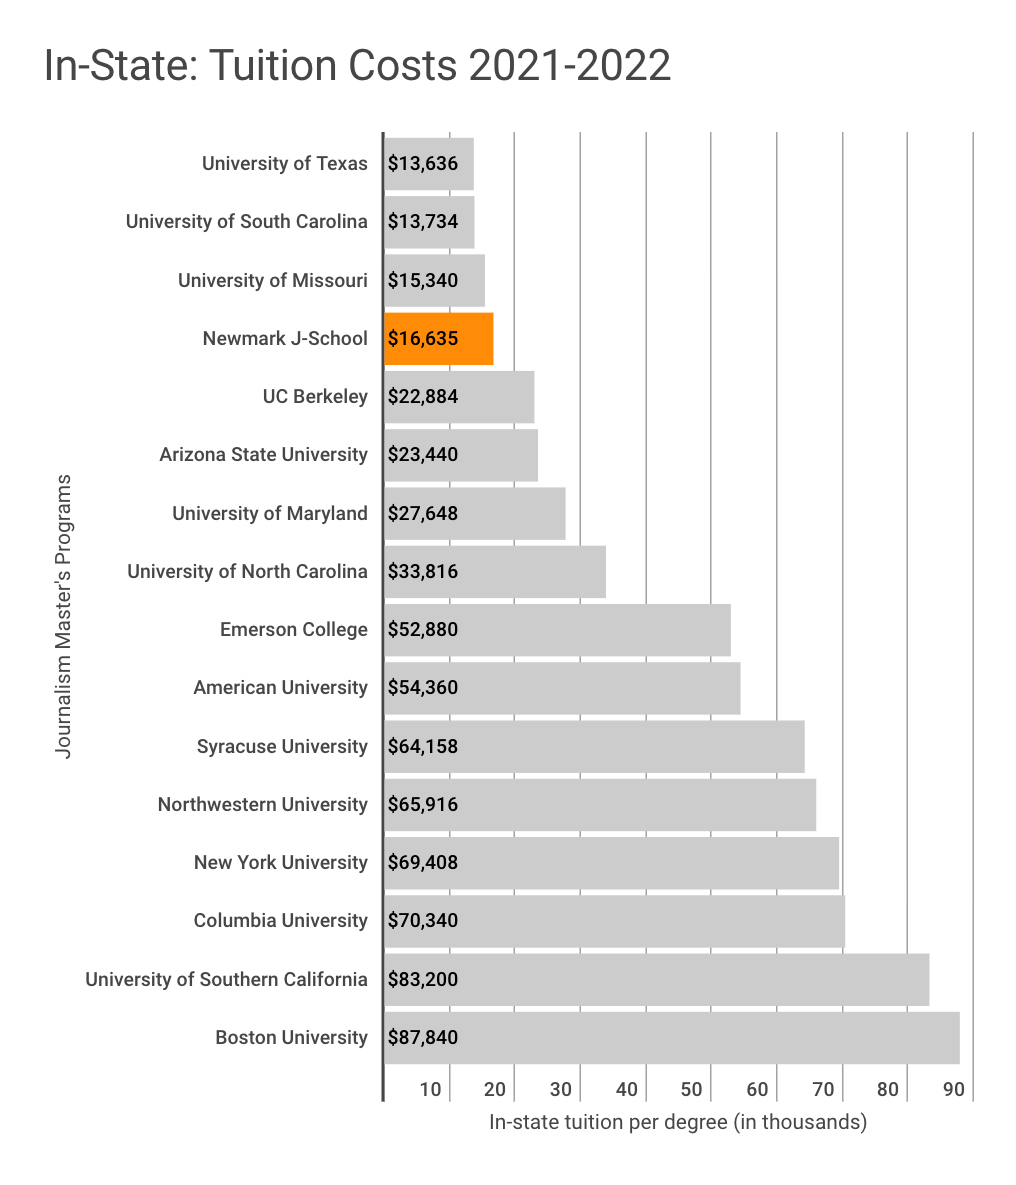 This chart shows that Newmark J-School has the fourth lowest in-state tuition among 16 of the most popular journalism graduate programs in the U.S. for the 2021-2022 academic year. Only the University of Texas at $13,636, the University of South Carolina at $13,734, and the University of Missouri at $15,340 are lower than Newmark J-School's $16,635. The costliest program in this chart is Boston University at $87,840.